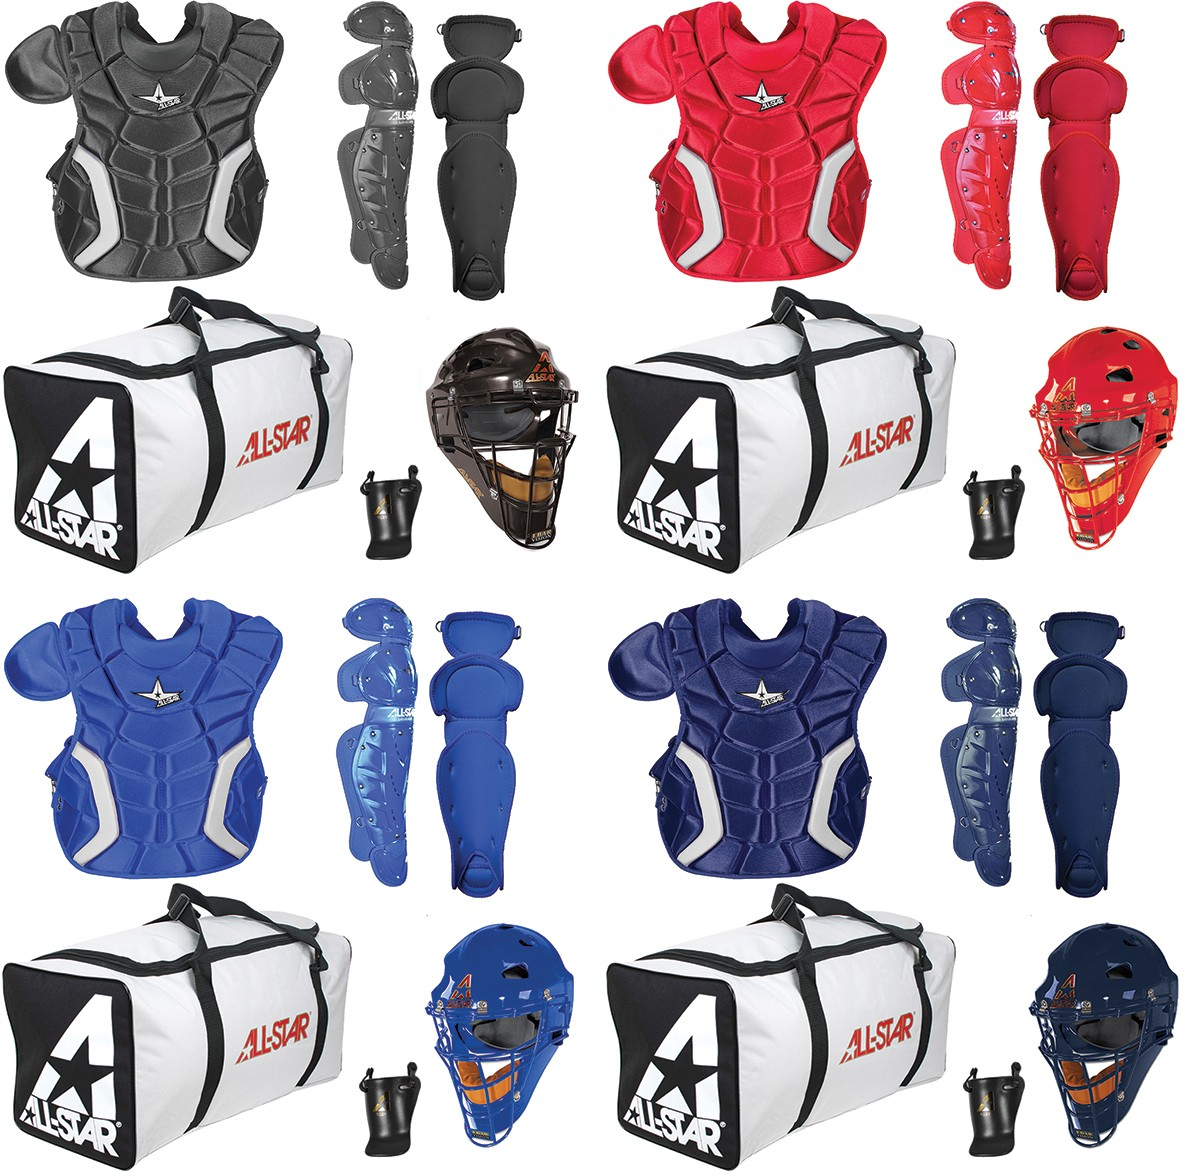 All-Star CK912PS Player s Series Catcher s Equipment Kit, YOUTH ages 9-12 3b4e6bbdbd